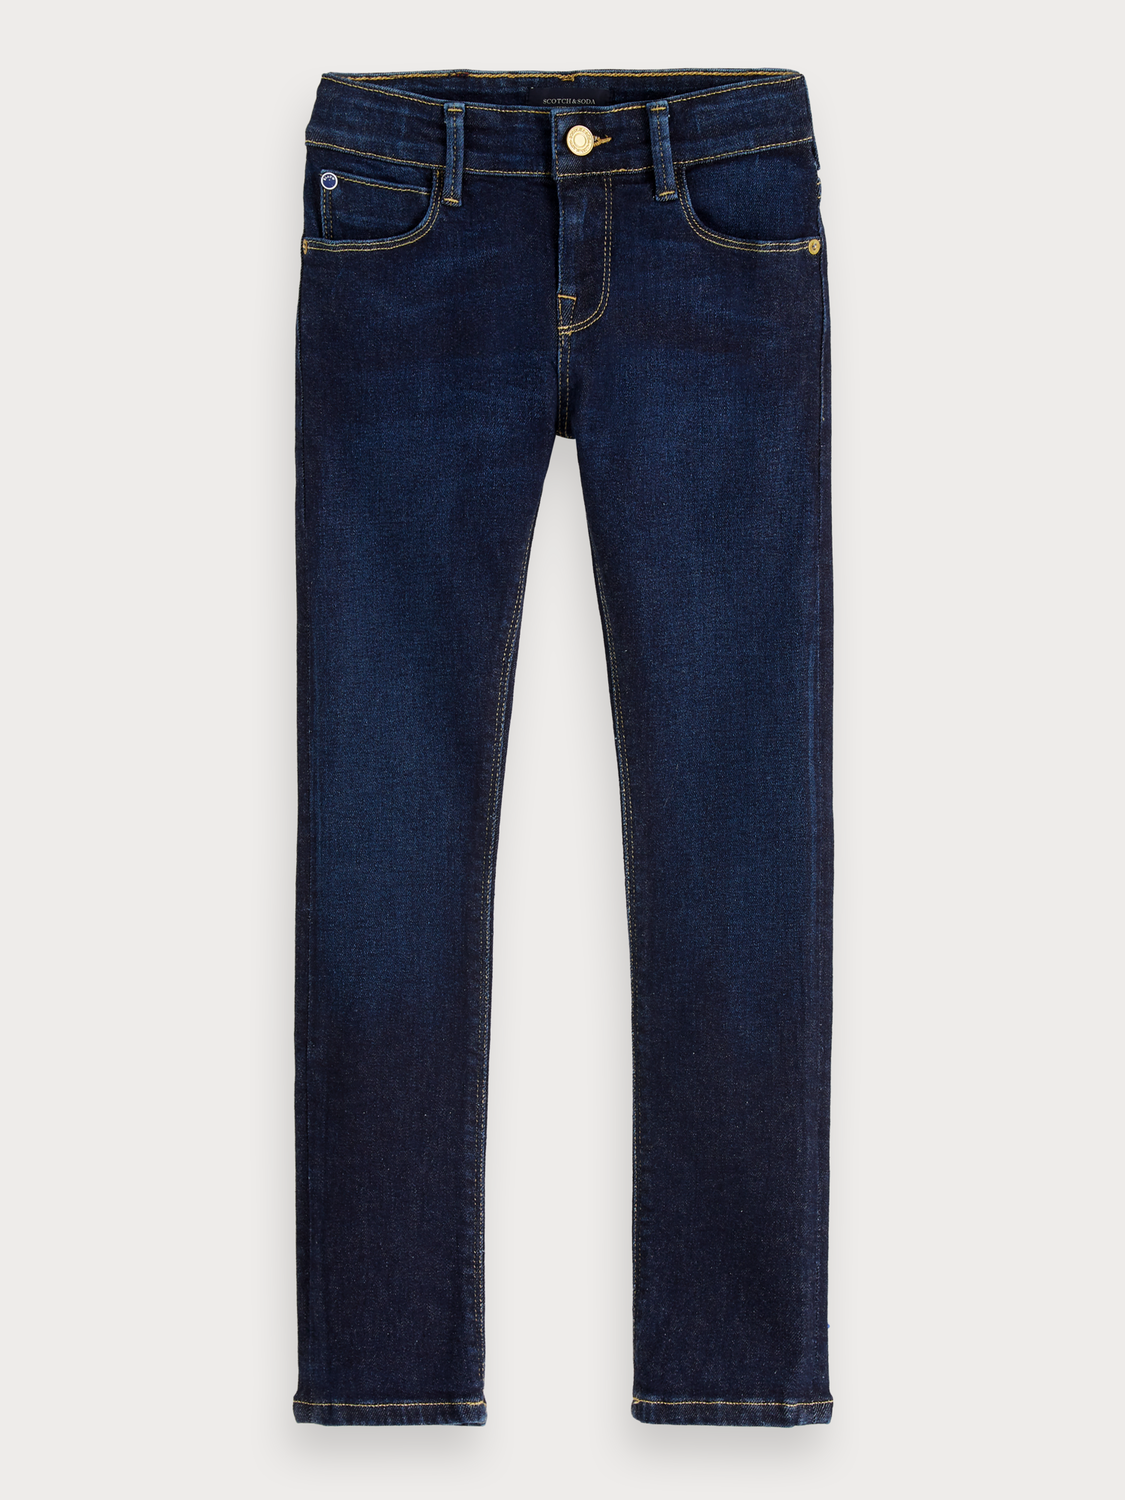 Boys Extra Super Skinny Fit Jeans - The Blauw Art